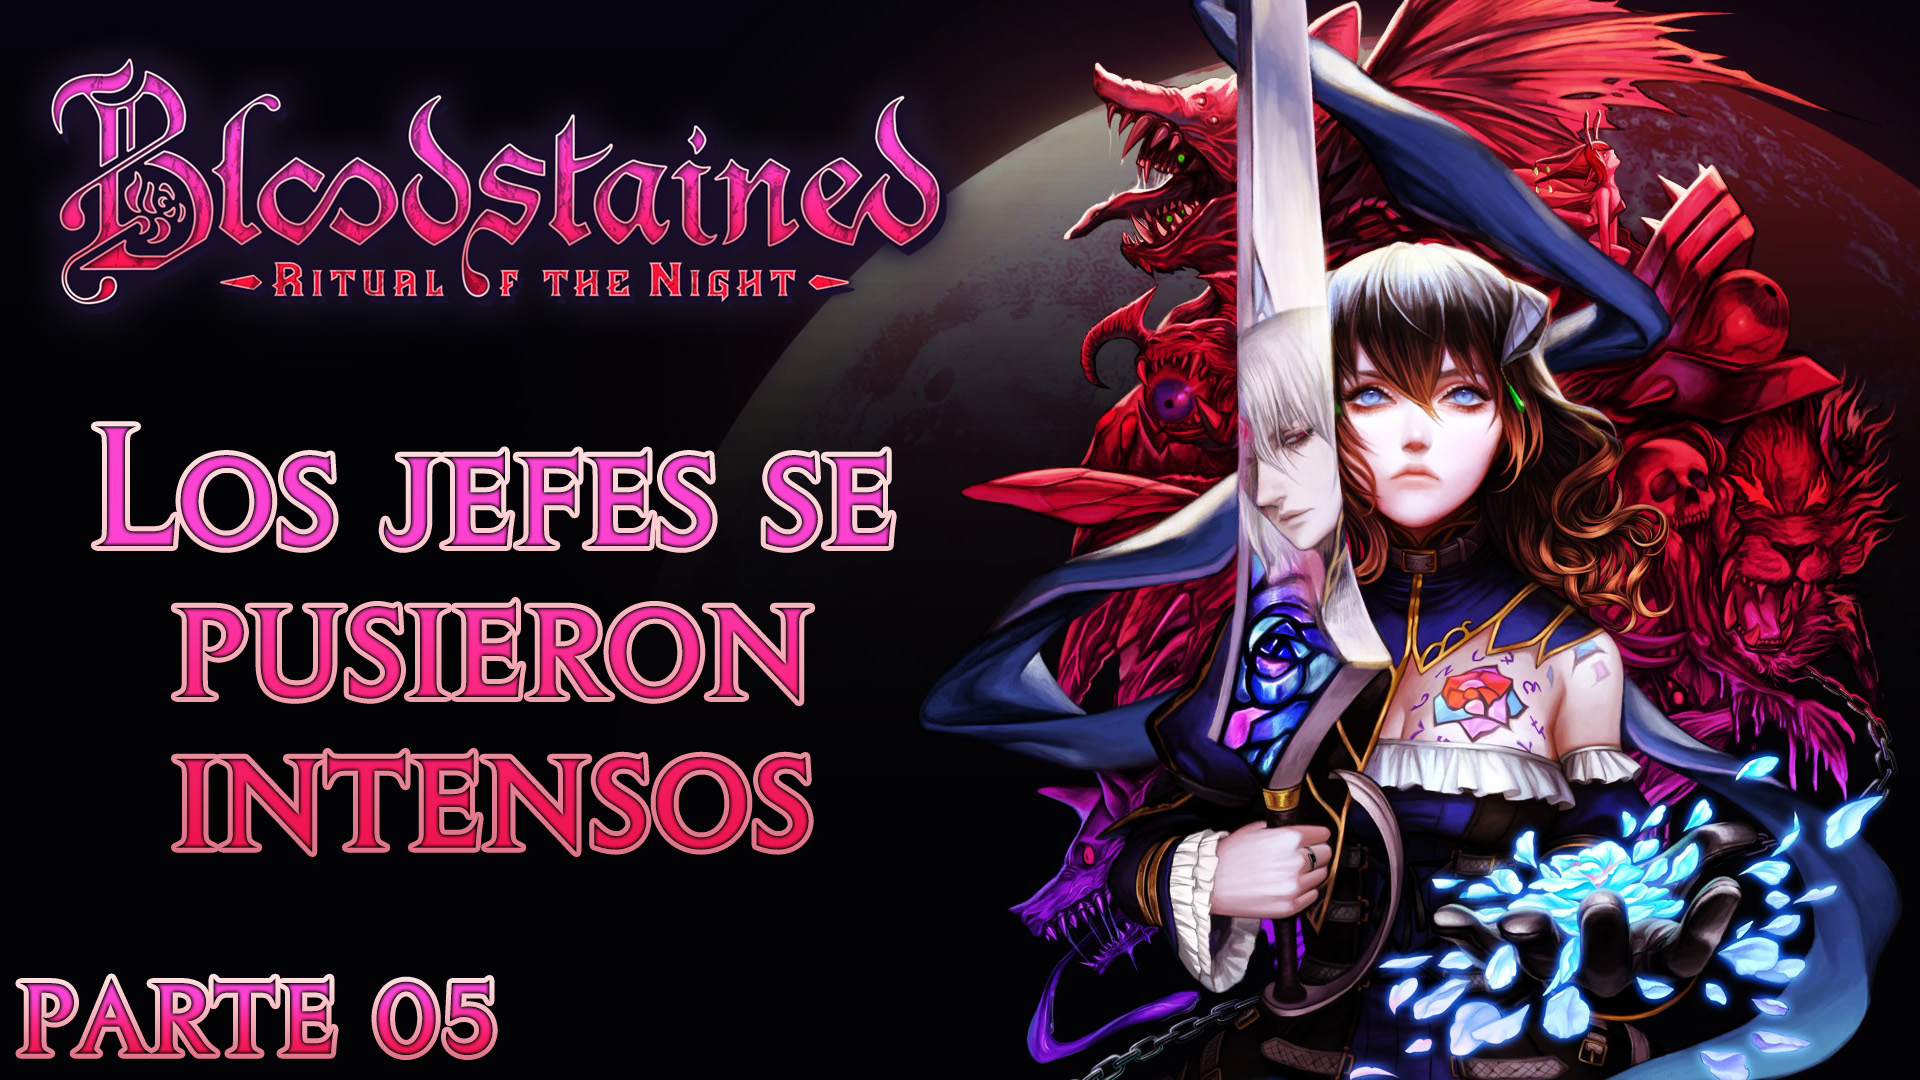 Serie Bloodstained Ritual of the Night #5 – Los jefes se pusieron intensos